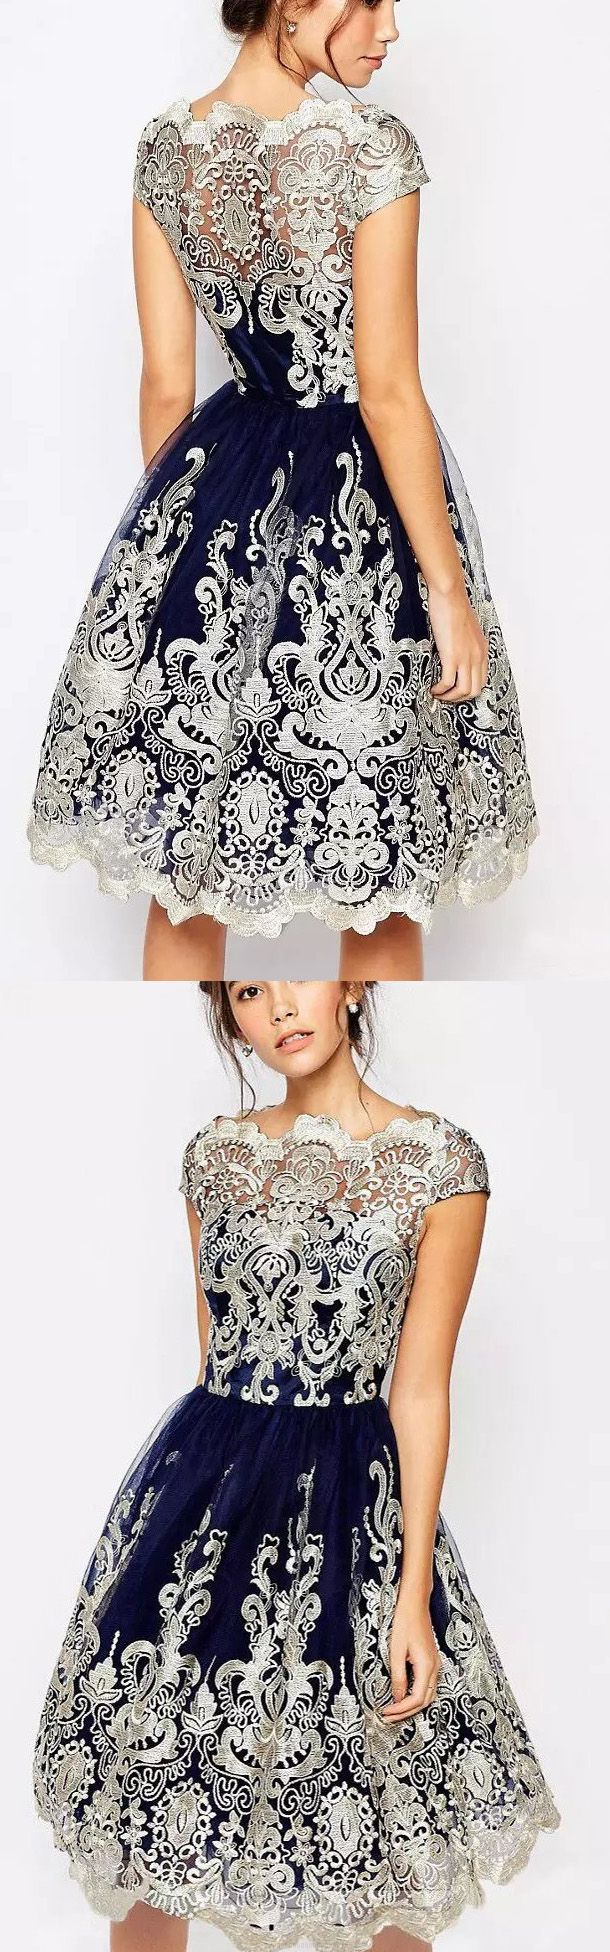 best prom dresses images on pinterest homecoming dress